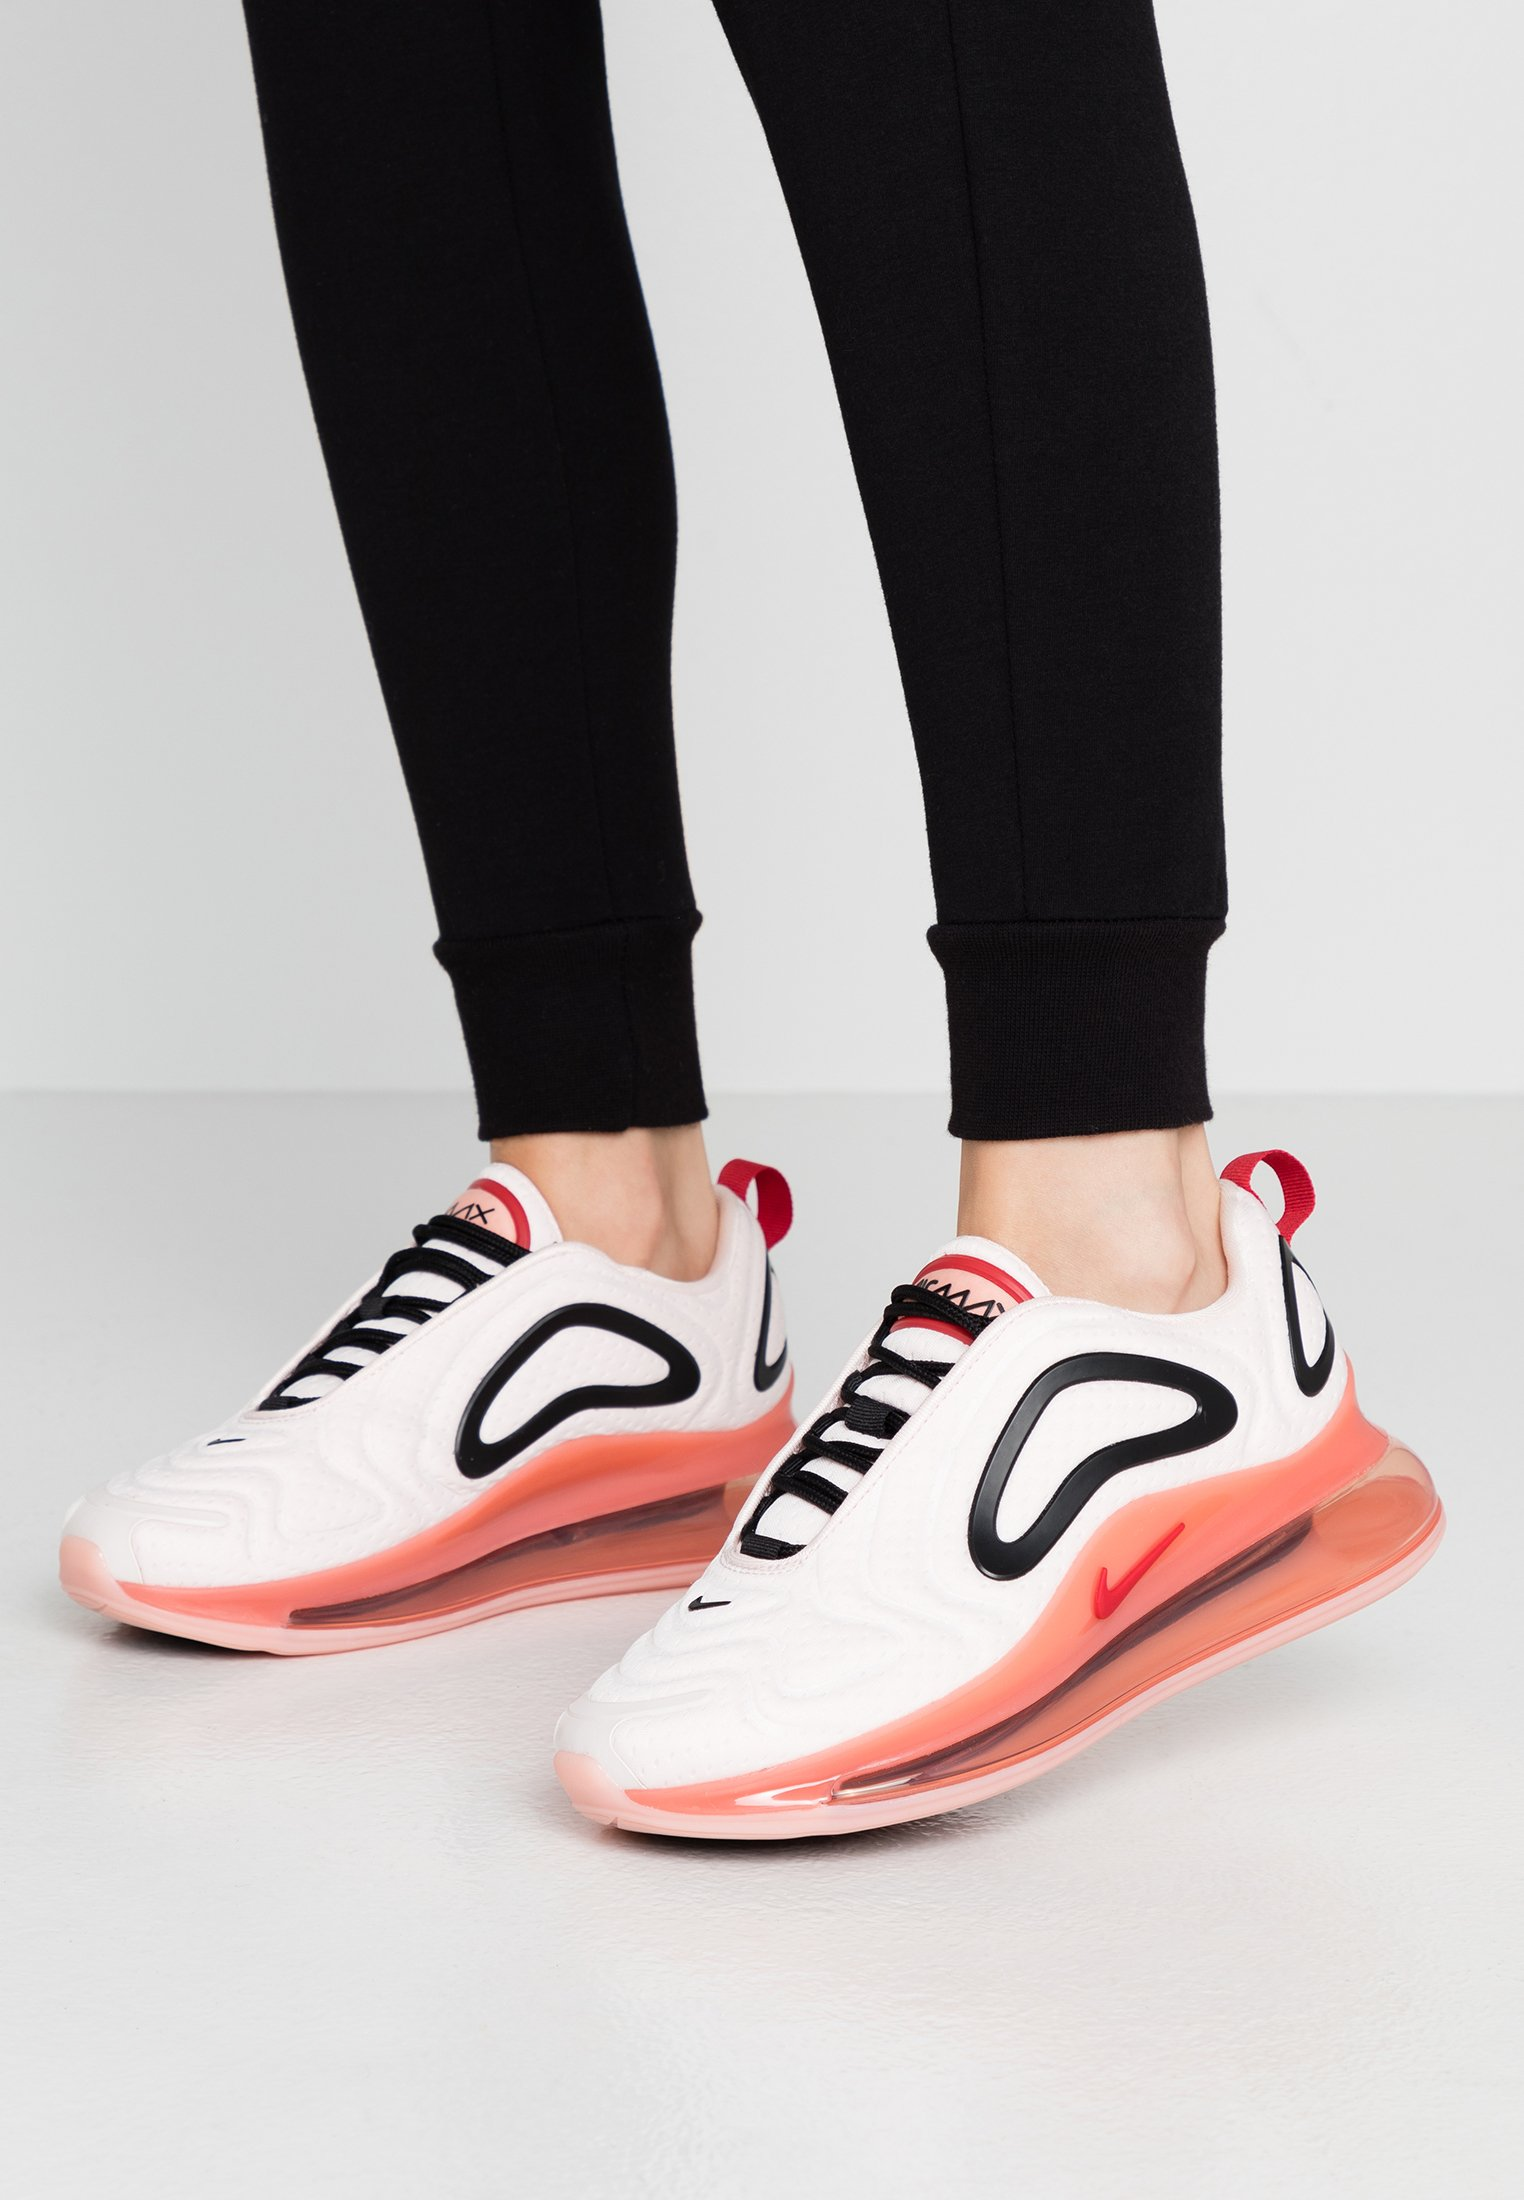 AIR MAX 720 Sneakers light soft pinkgym redcoral stardustblack